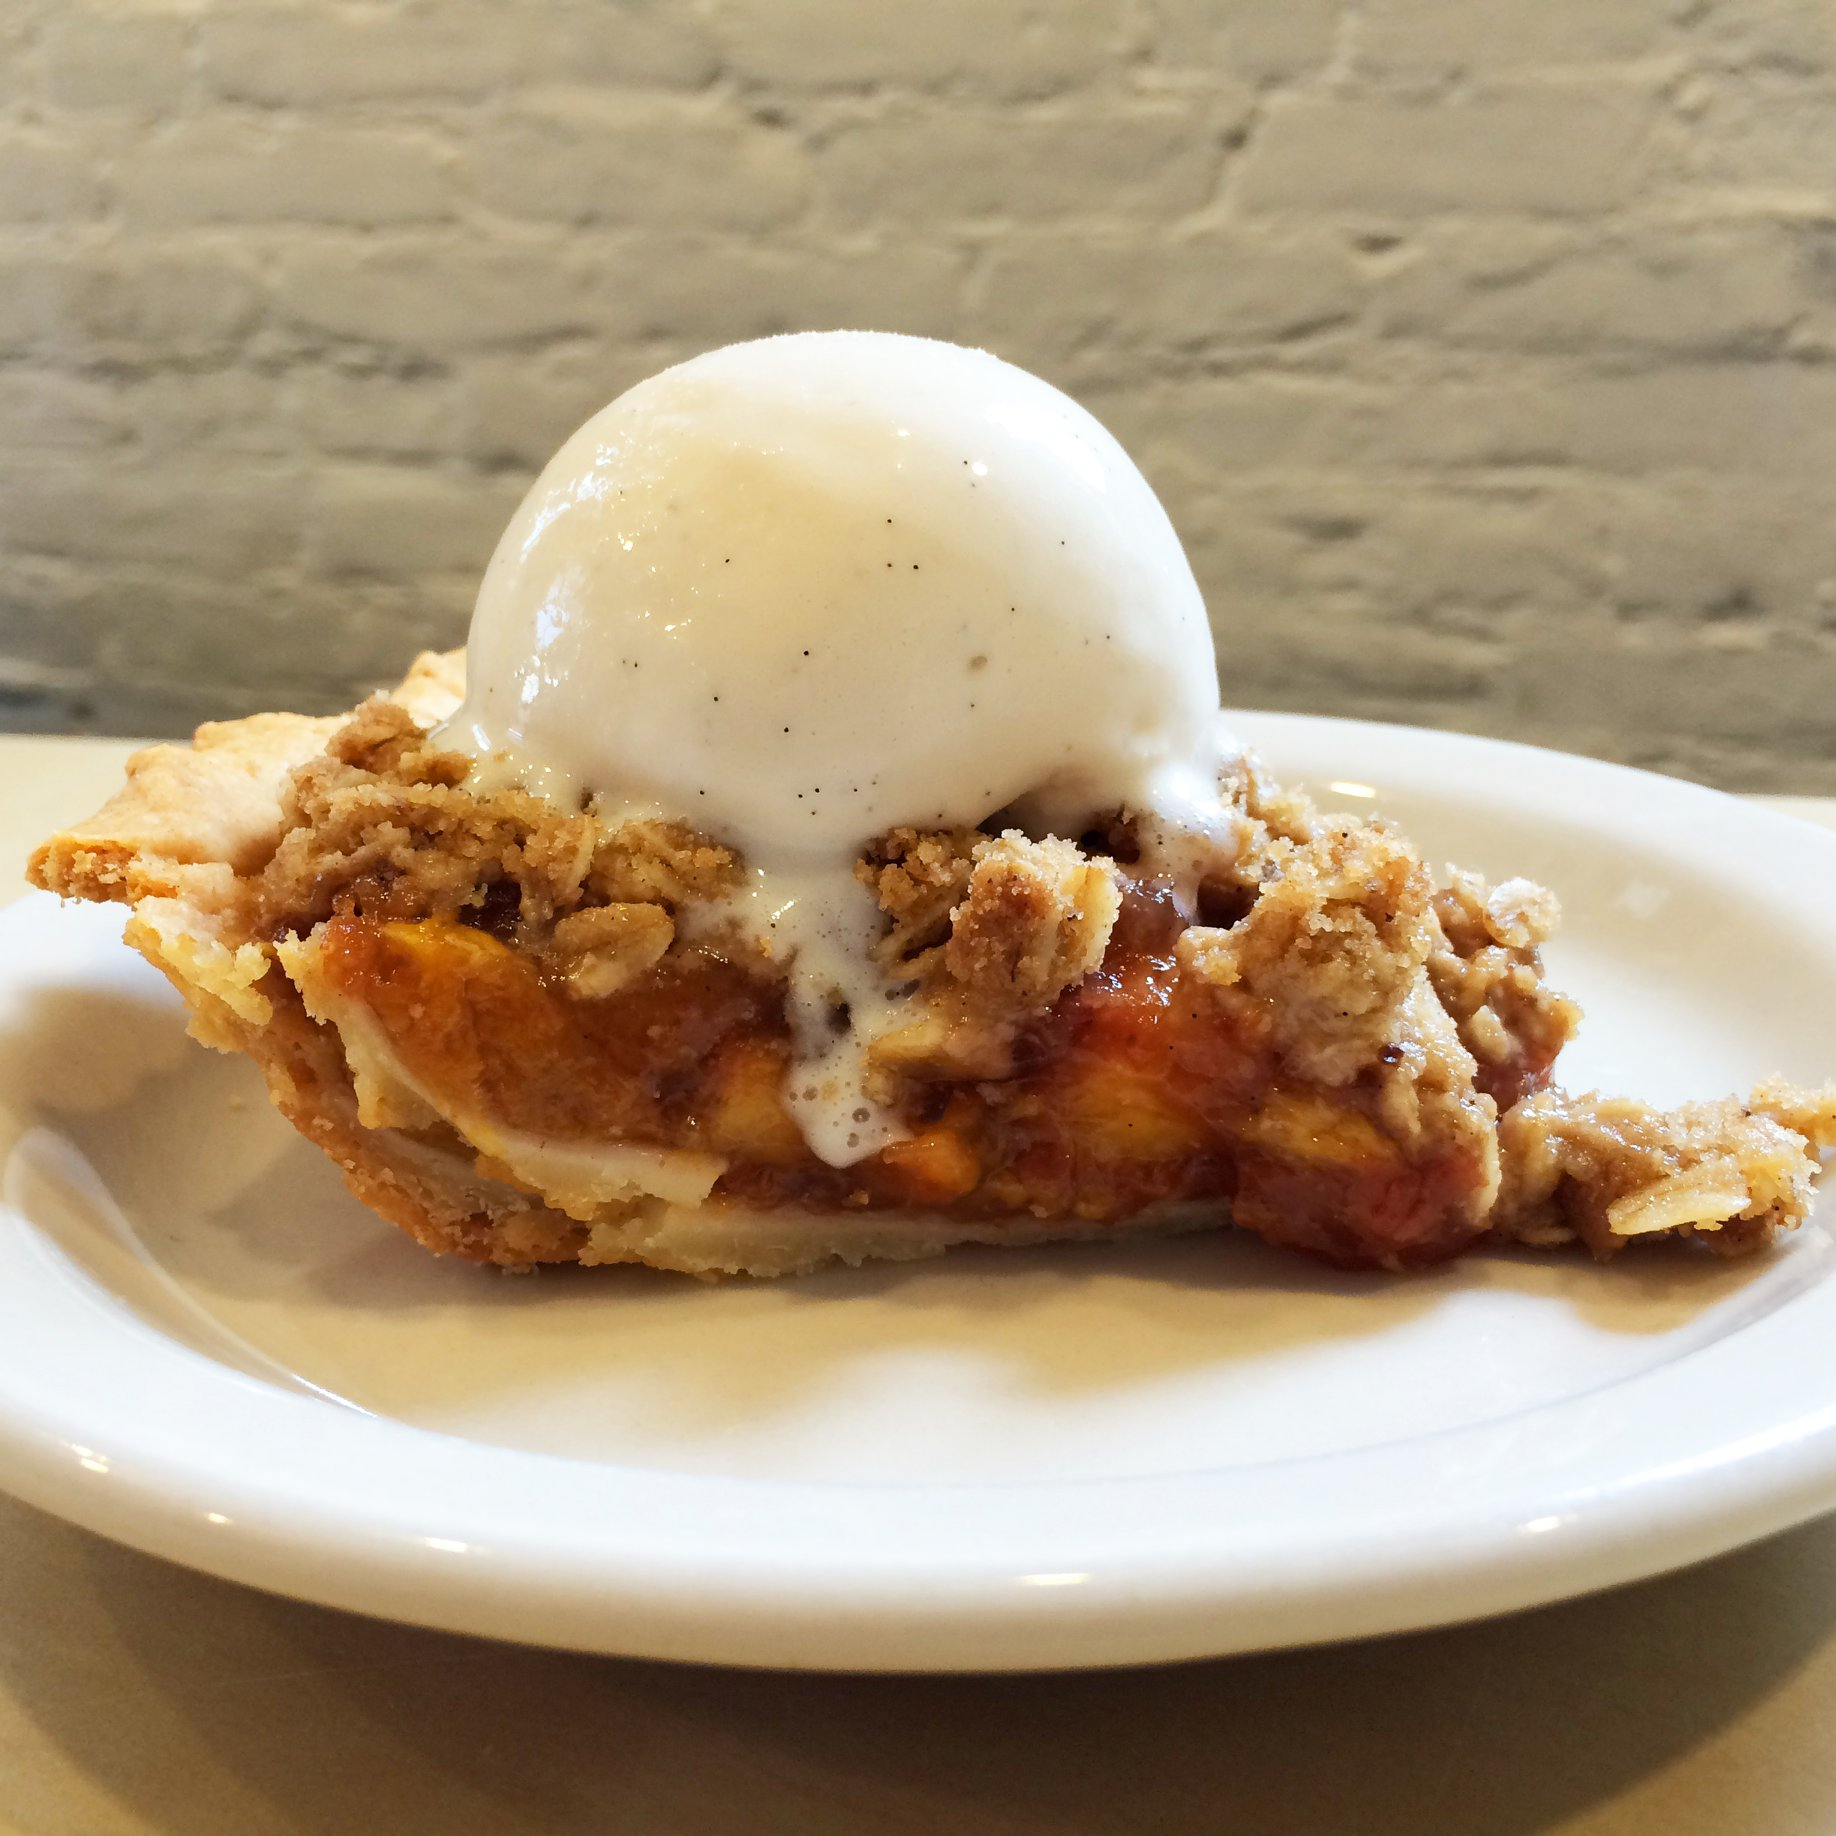 Country Peach Pie: A Taste of Summer